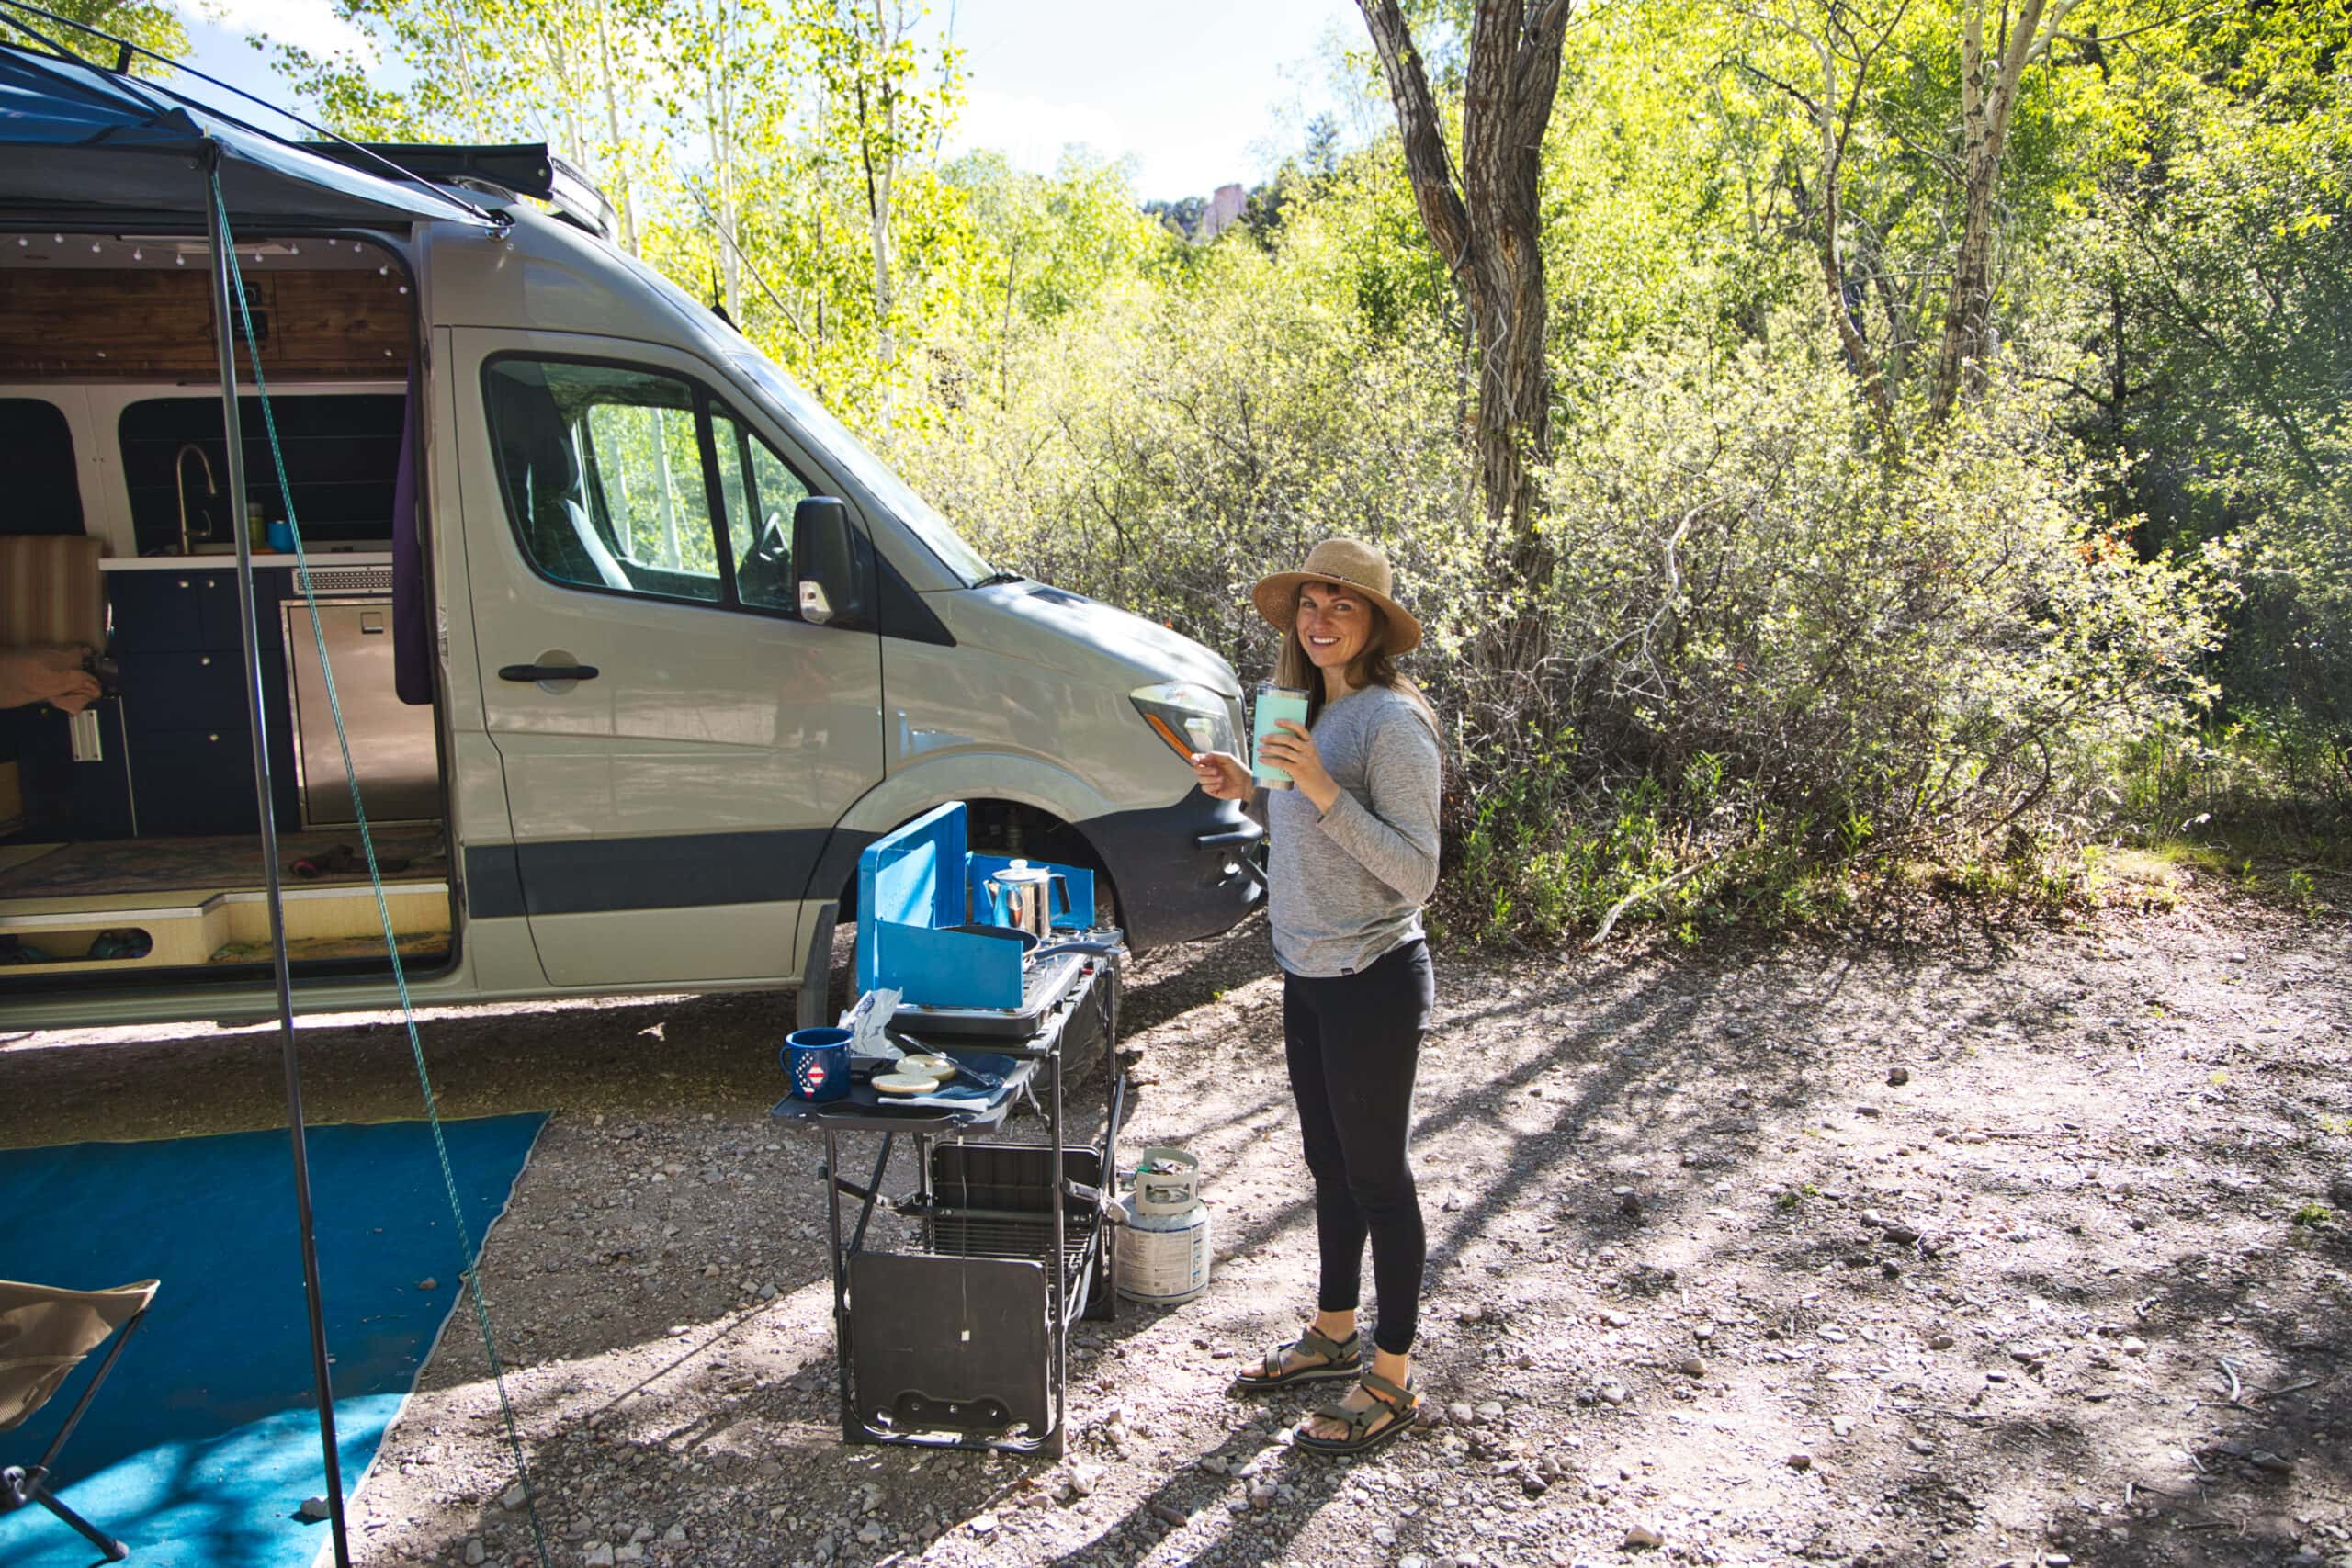 Camp Cooking Kitchen Essentials for Camping & Van Life